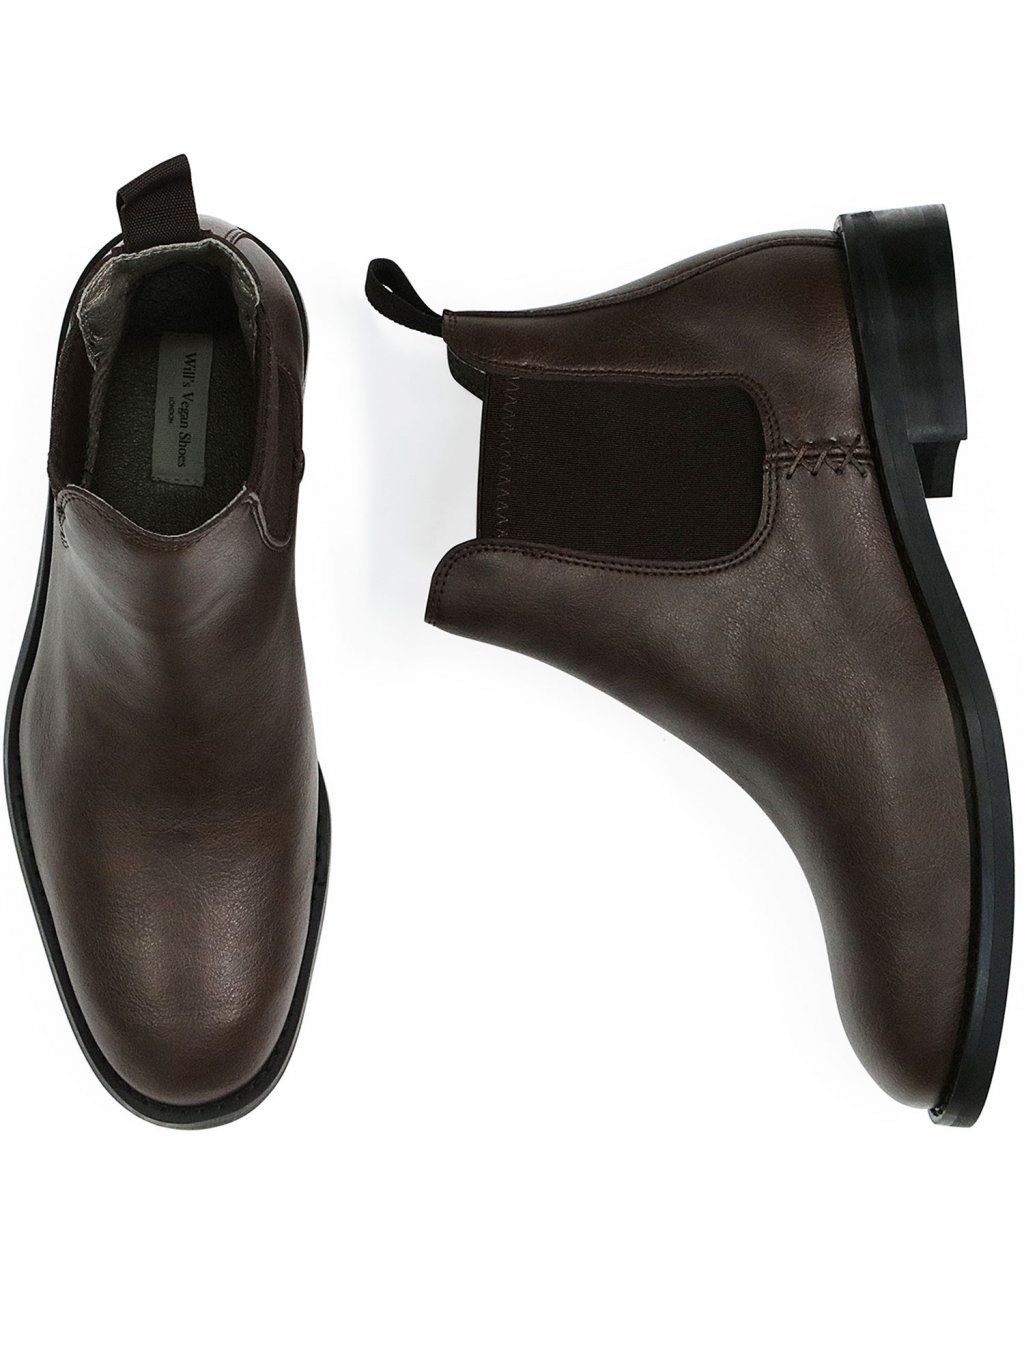 waterproof chelsea boots dark brown 1